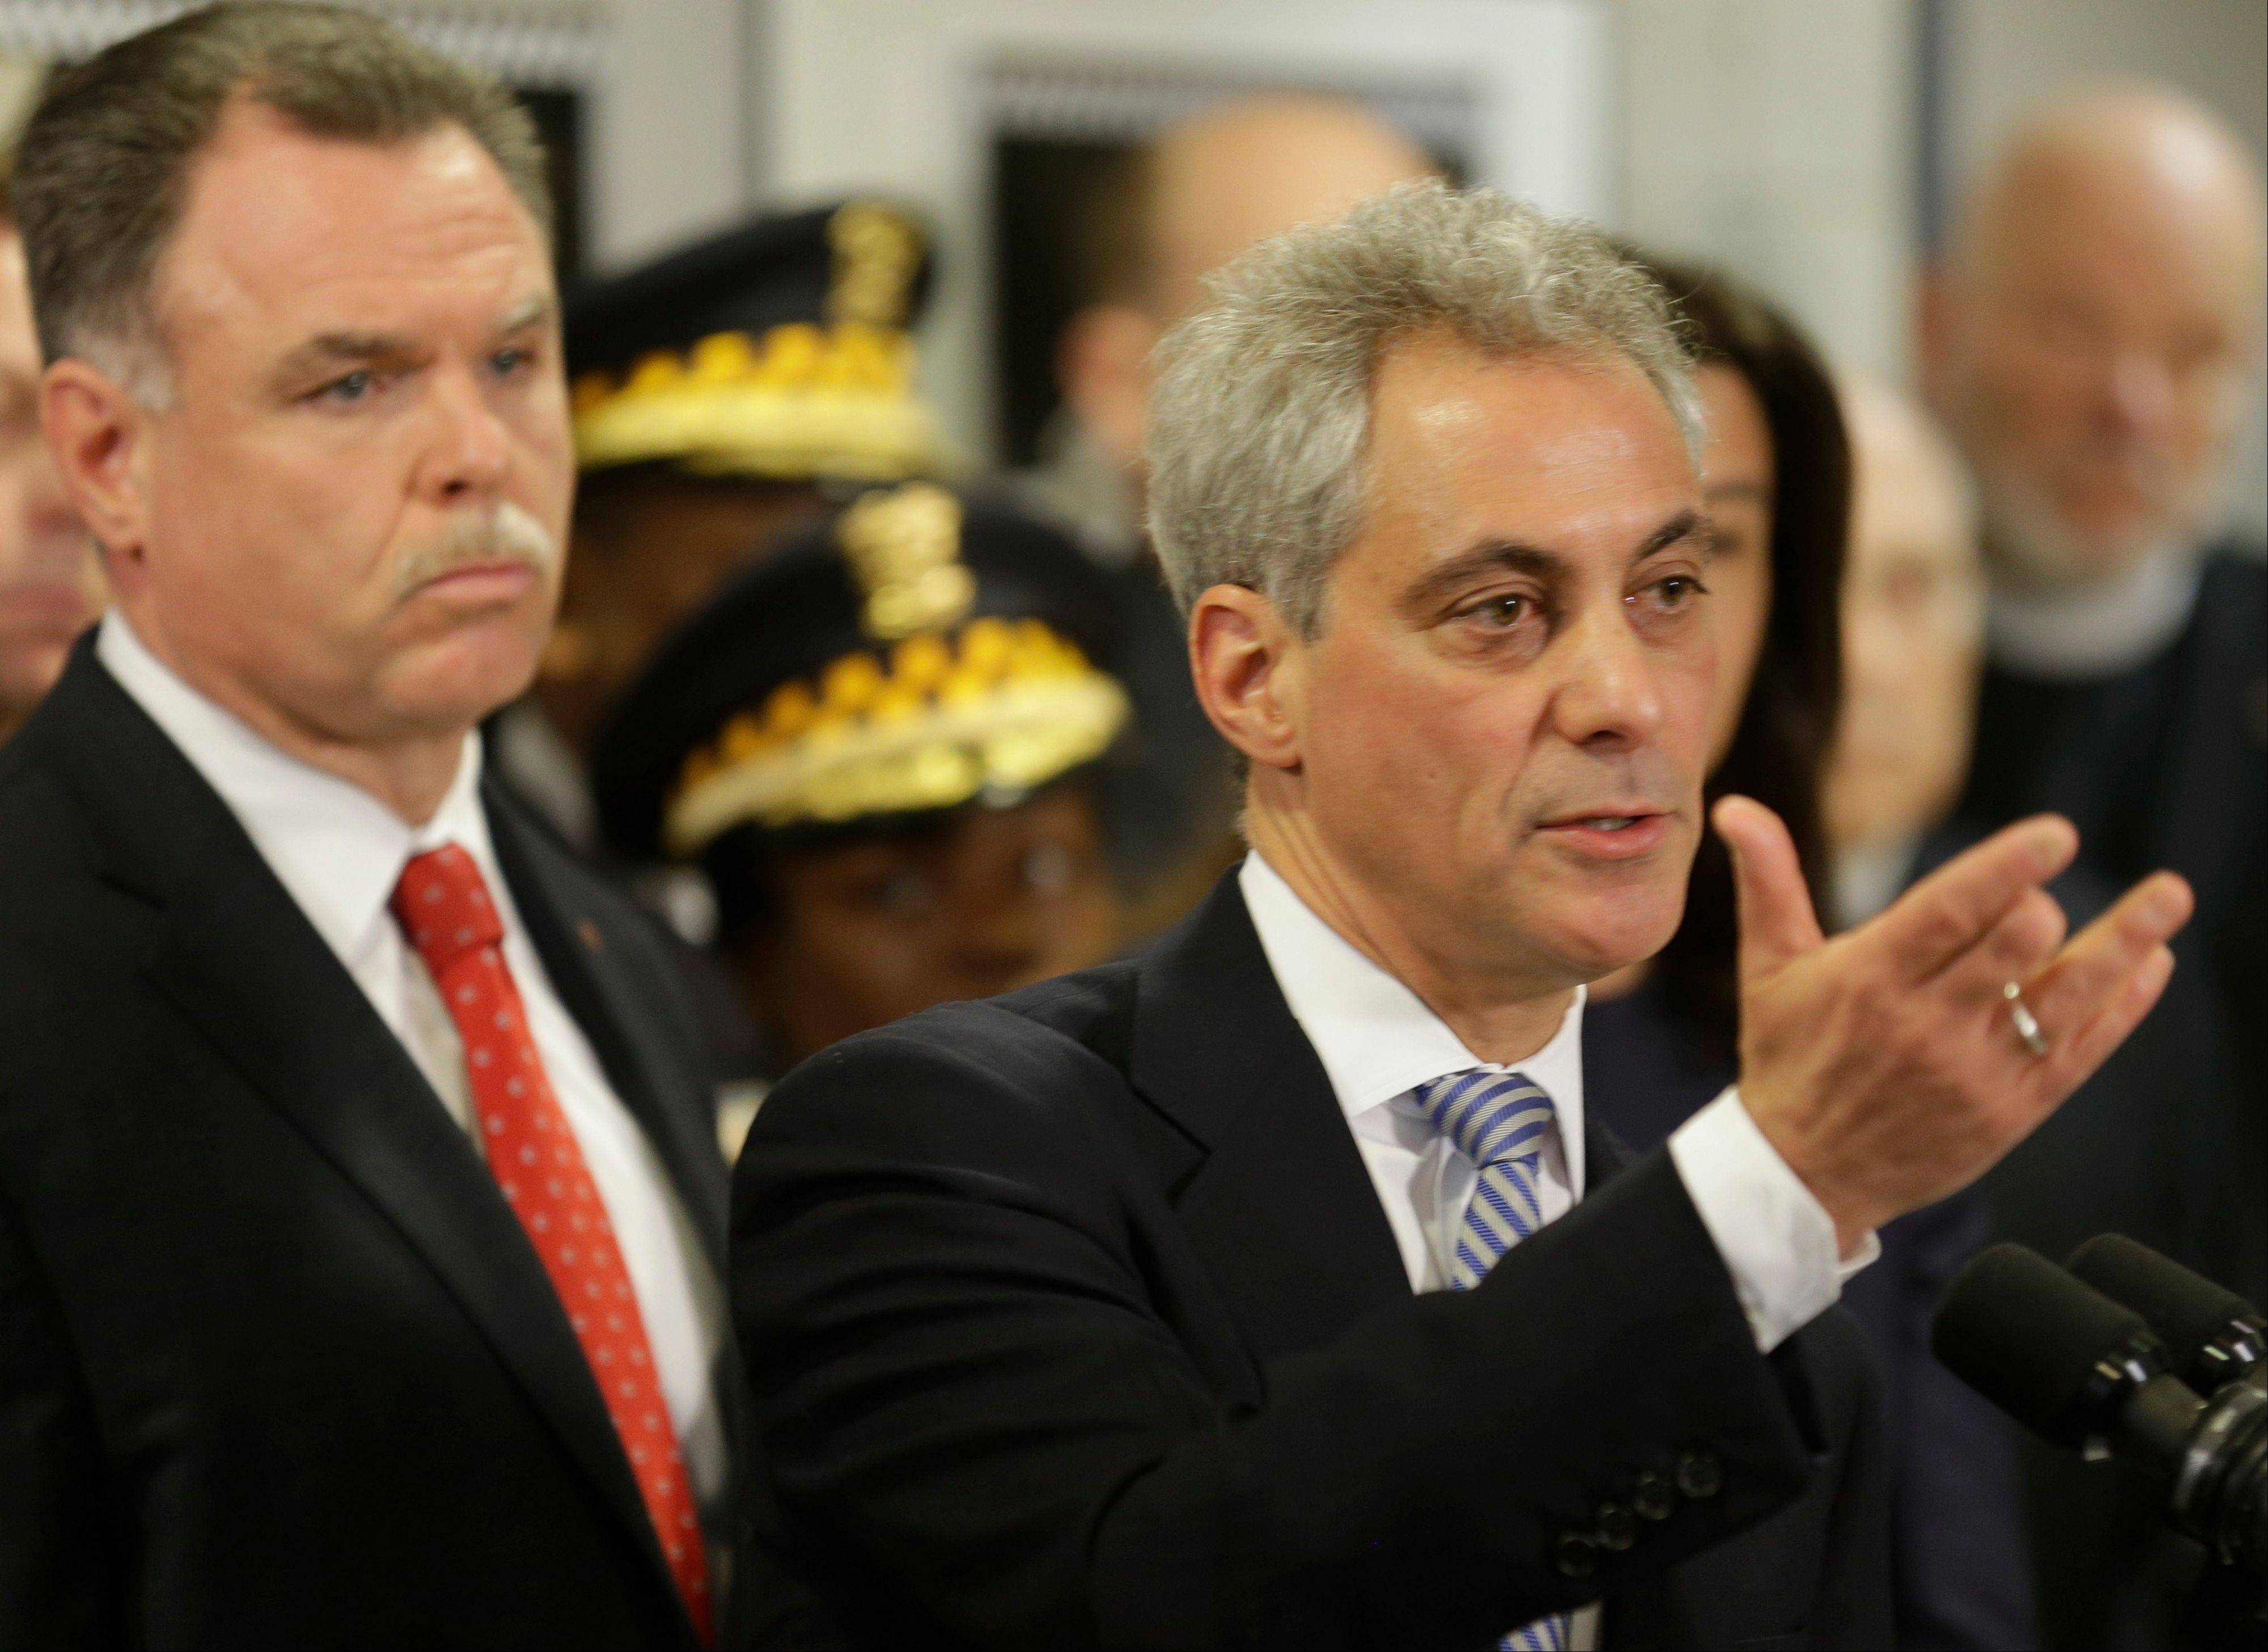 Chicago Mayor Rahm Emanuel and Chicago Police Superintendent Garry McCarthy discuss gun violence at a news conference Monday in Chicago. During the news conference McCarthy, Emanuel and Cook County State's Attorney Anita Alvarez said they will push for state legislation that increases the minimum sentences for those who violate the state's gun laws.